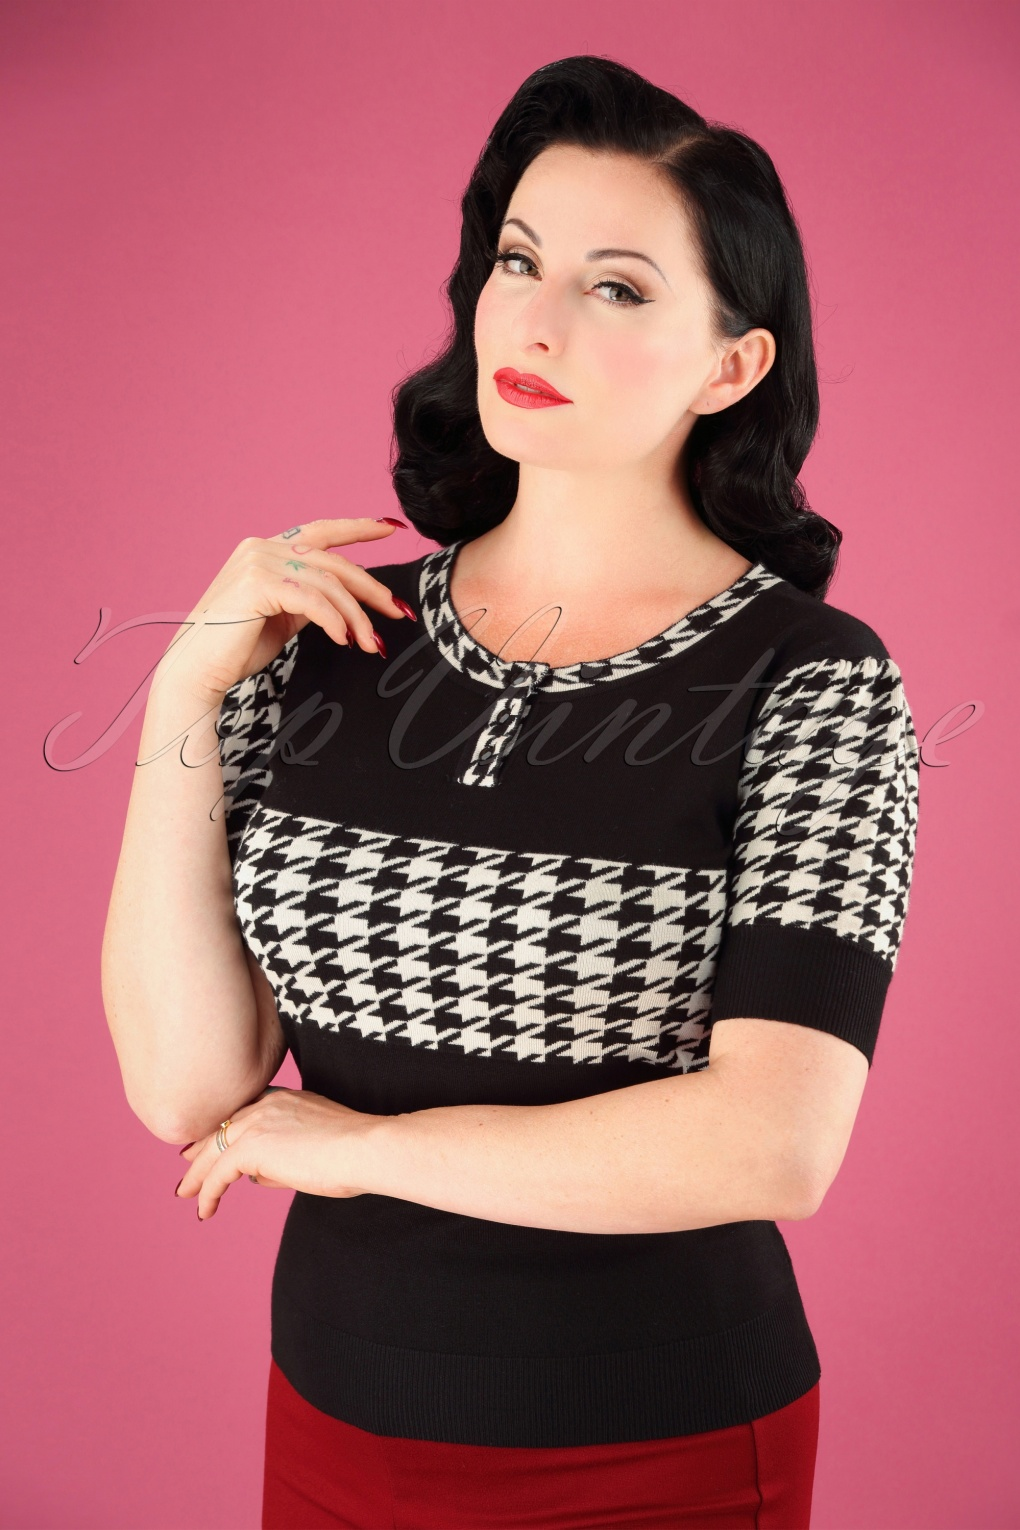 Vintage & Retro Shirts, Halter Tops, Blouses 50s Kimberly Houndstooth Sweater in Black and White £31.20 AT vintagedancer.com